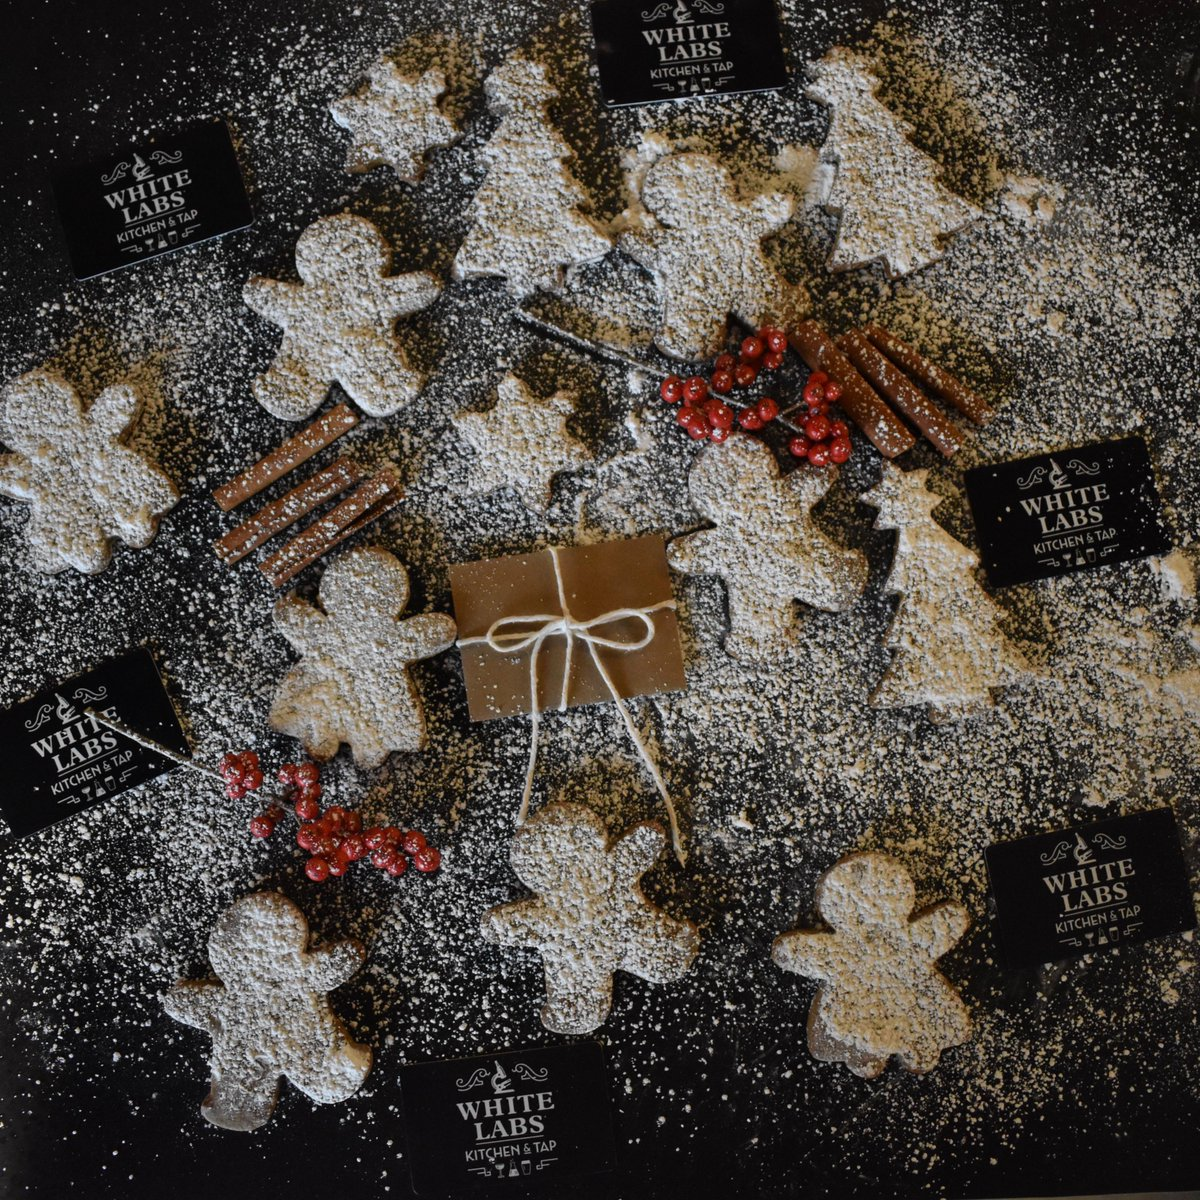 White Labs On Twitter Have You Heard The News Whitelabstapavl Is Hosting A Kids Holiday Cookie Lab December 15 Not Only Will The Kiddos Get To Make And Decorate Their Own Cookies